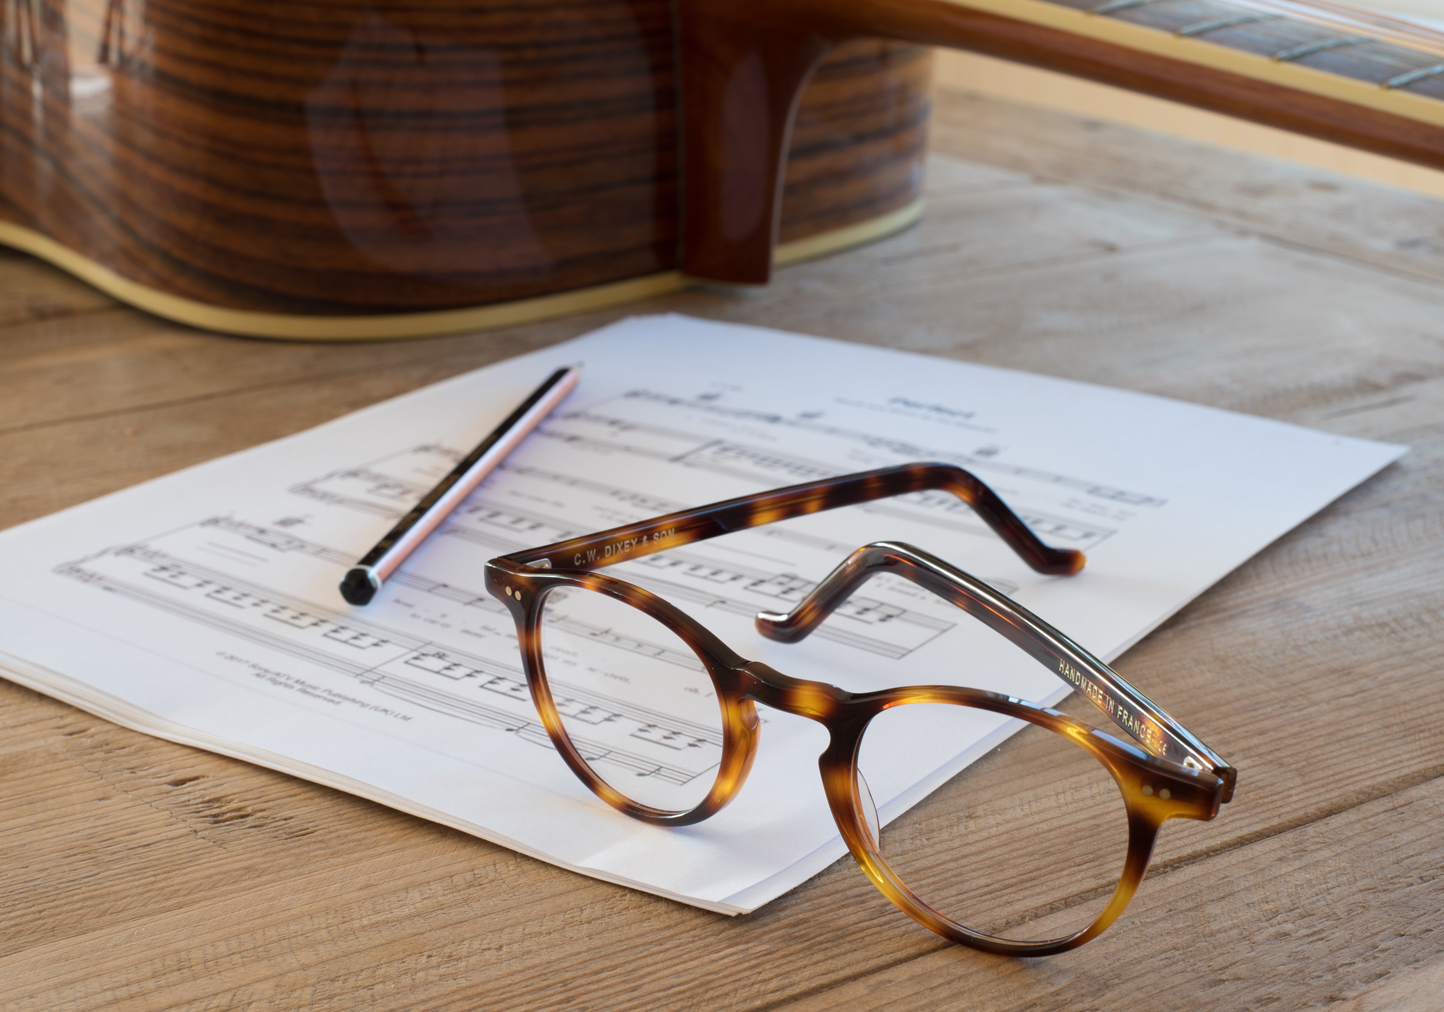 C.W. Dixey & Son | Fine British Eyewear Since 1777